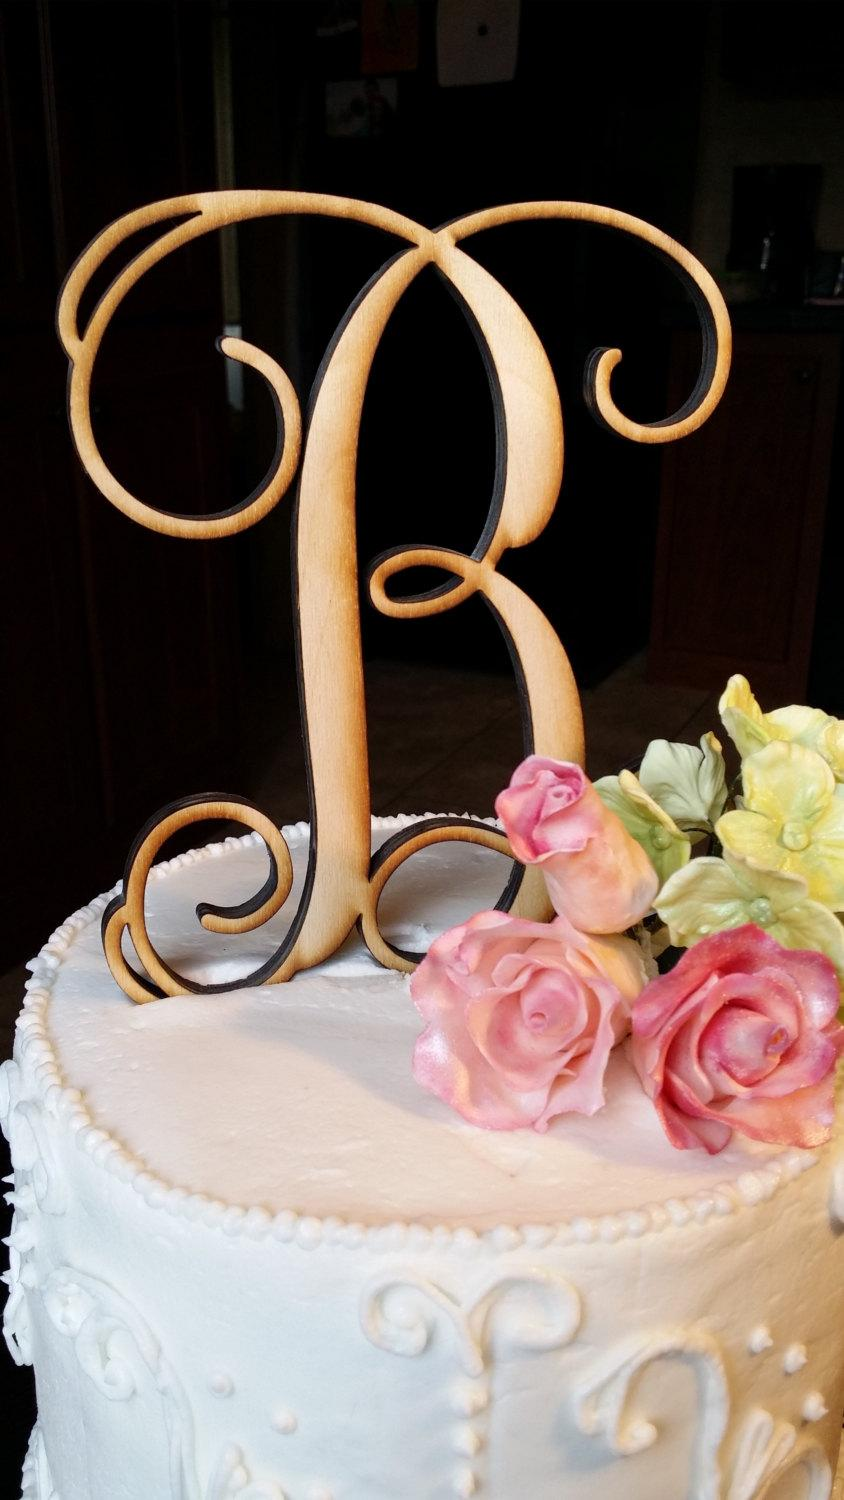 Mariage - Wooden Initial Cake Topper - Unpainted Vine Script Initial Cake Topper - Wedding Cake Topper